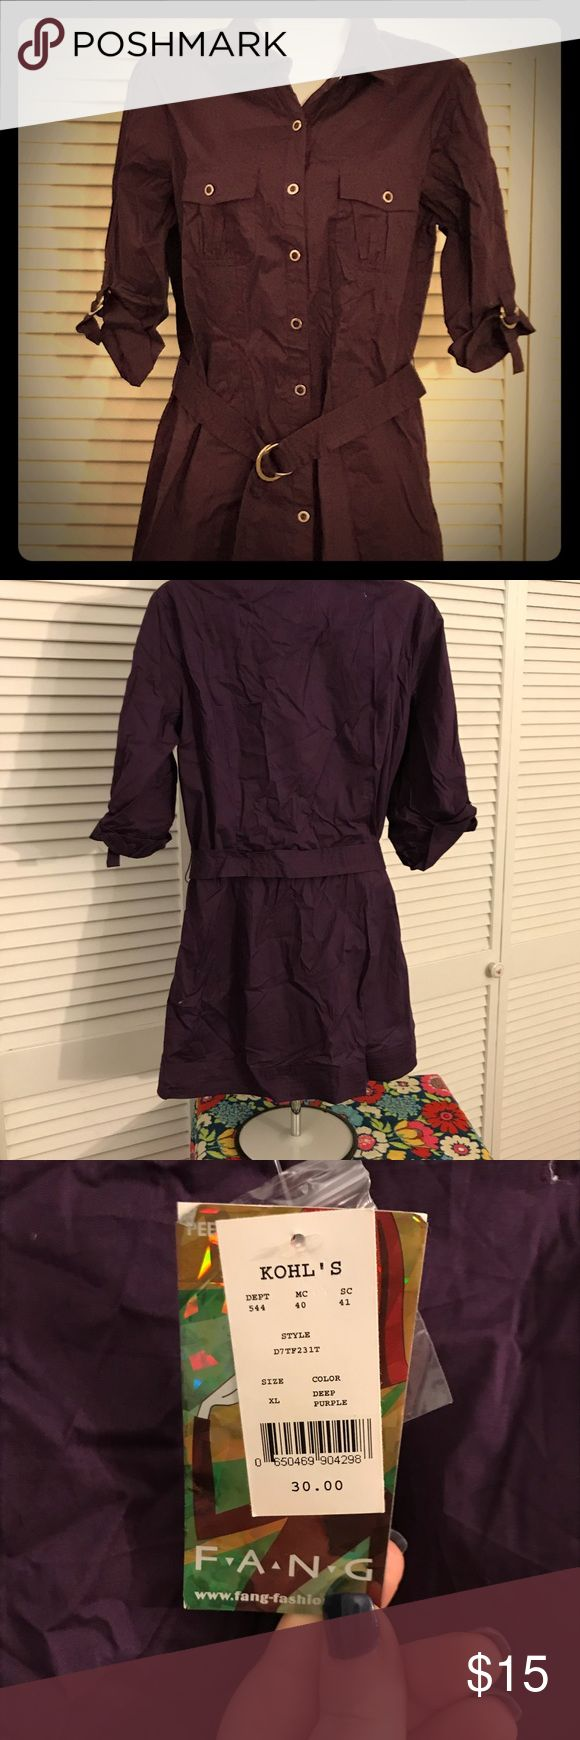 NWT eggplant 🍆 safari tunic dress NWT from Kohl's Jr. section. Beautiful eggplant safari style tunic dress with ties up sleeves and belted waist. Perfect with dark leggings and combat boots Dresses Mini